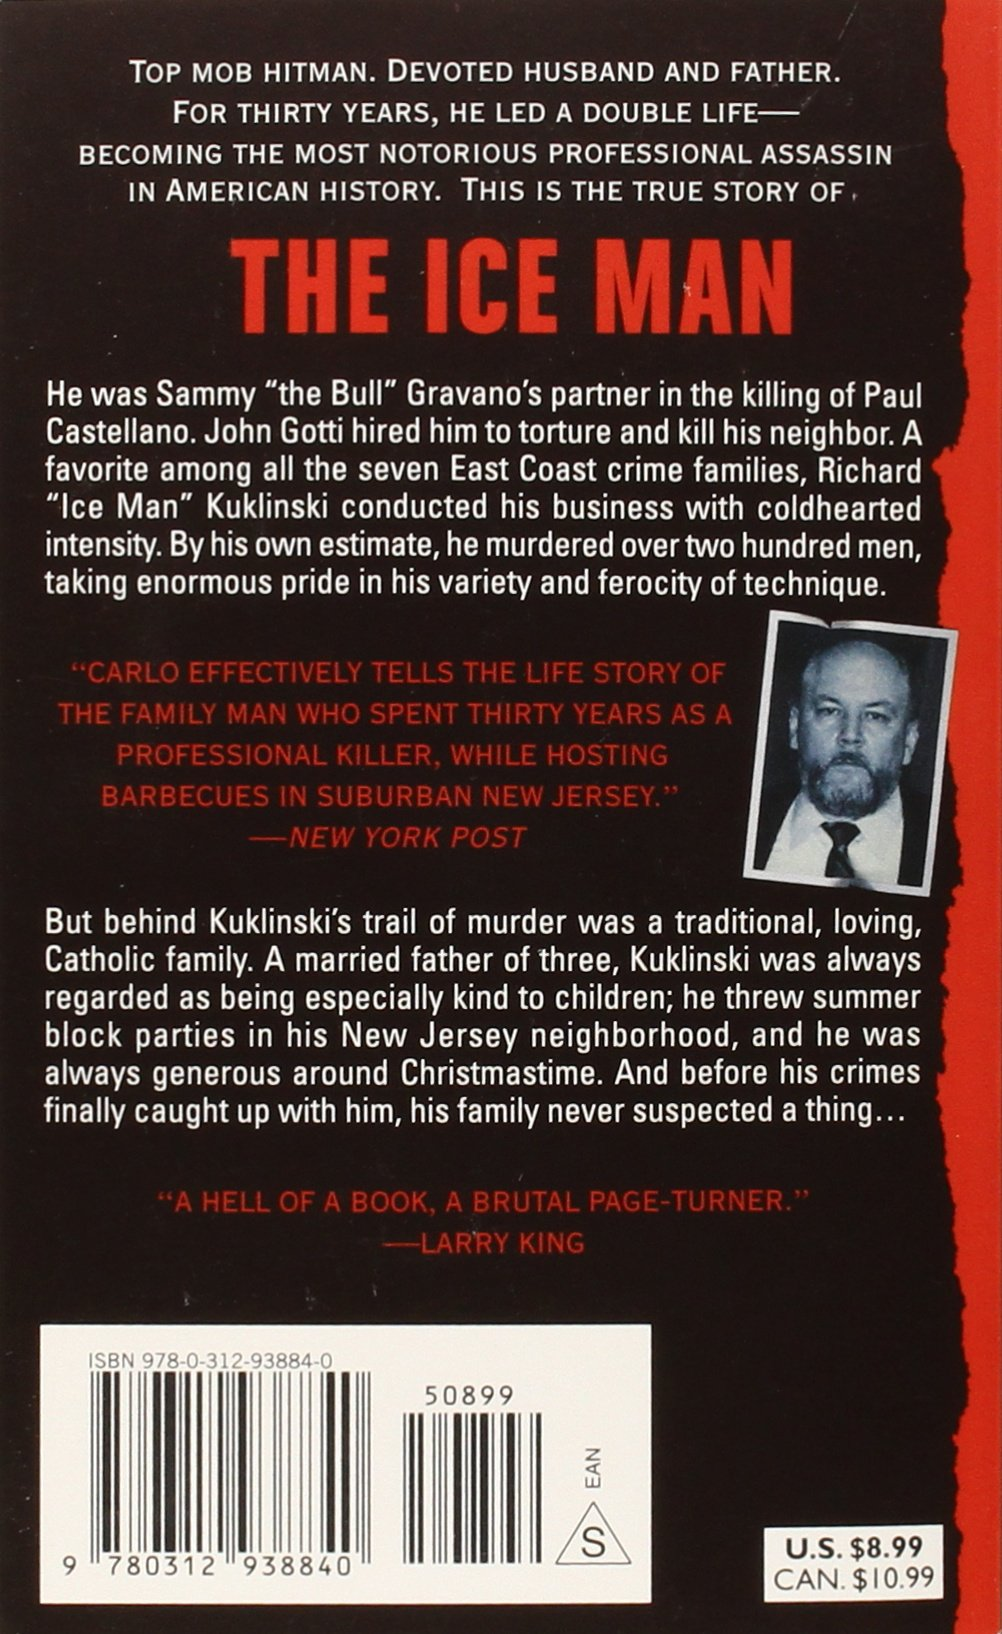 The ice man confessions of a mafia contract killer philip carlo the ice man confessions of a mafia contract killer philip carlo 9780312938840 amazon books fandeluxe Images